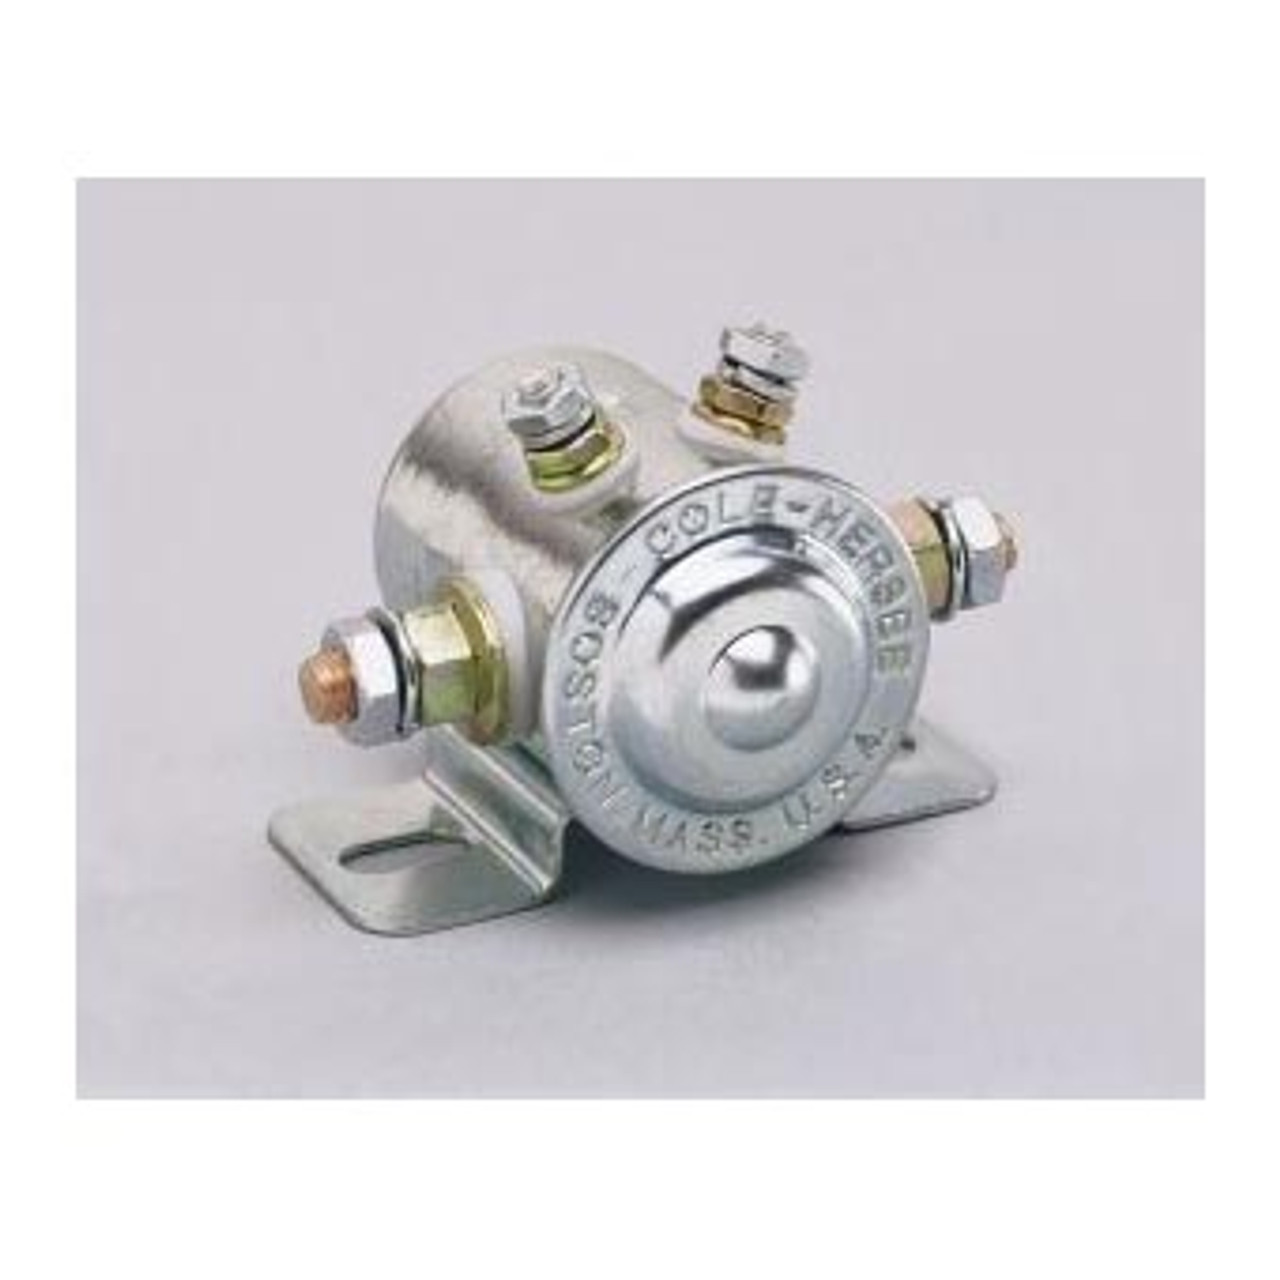 SOLENOID 36V CONTINUOUS INSULATED 85 AMP SPST